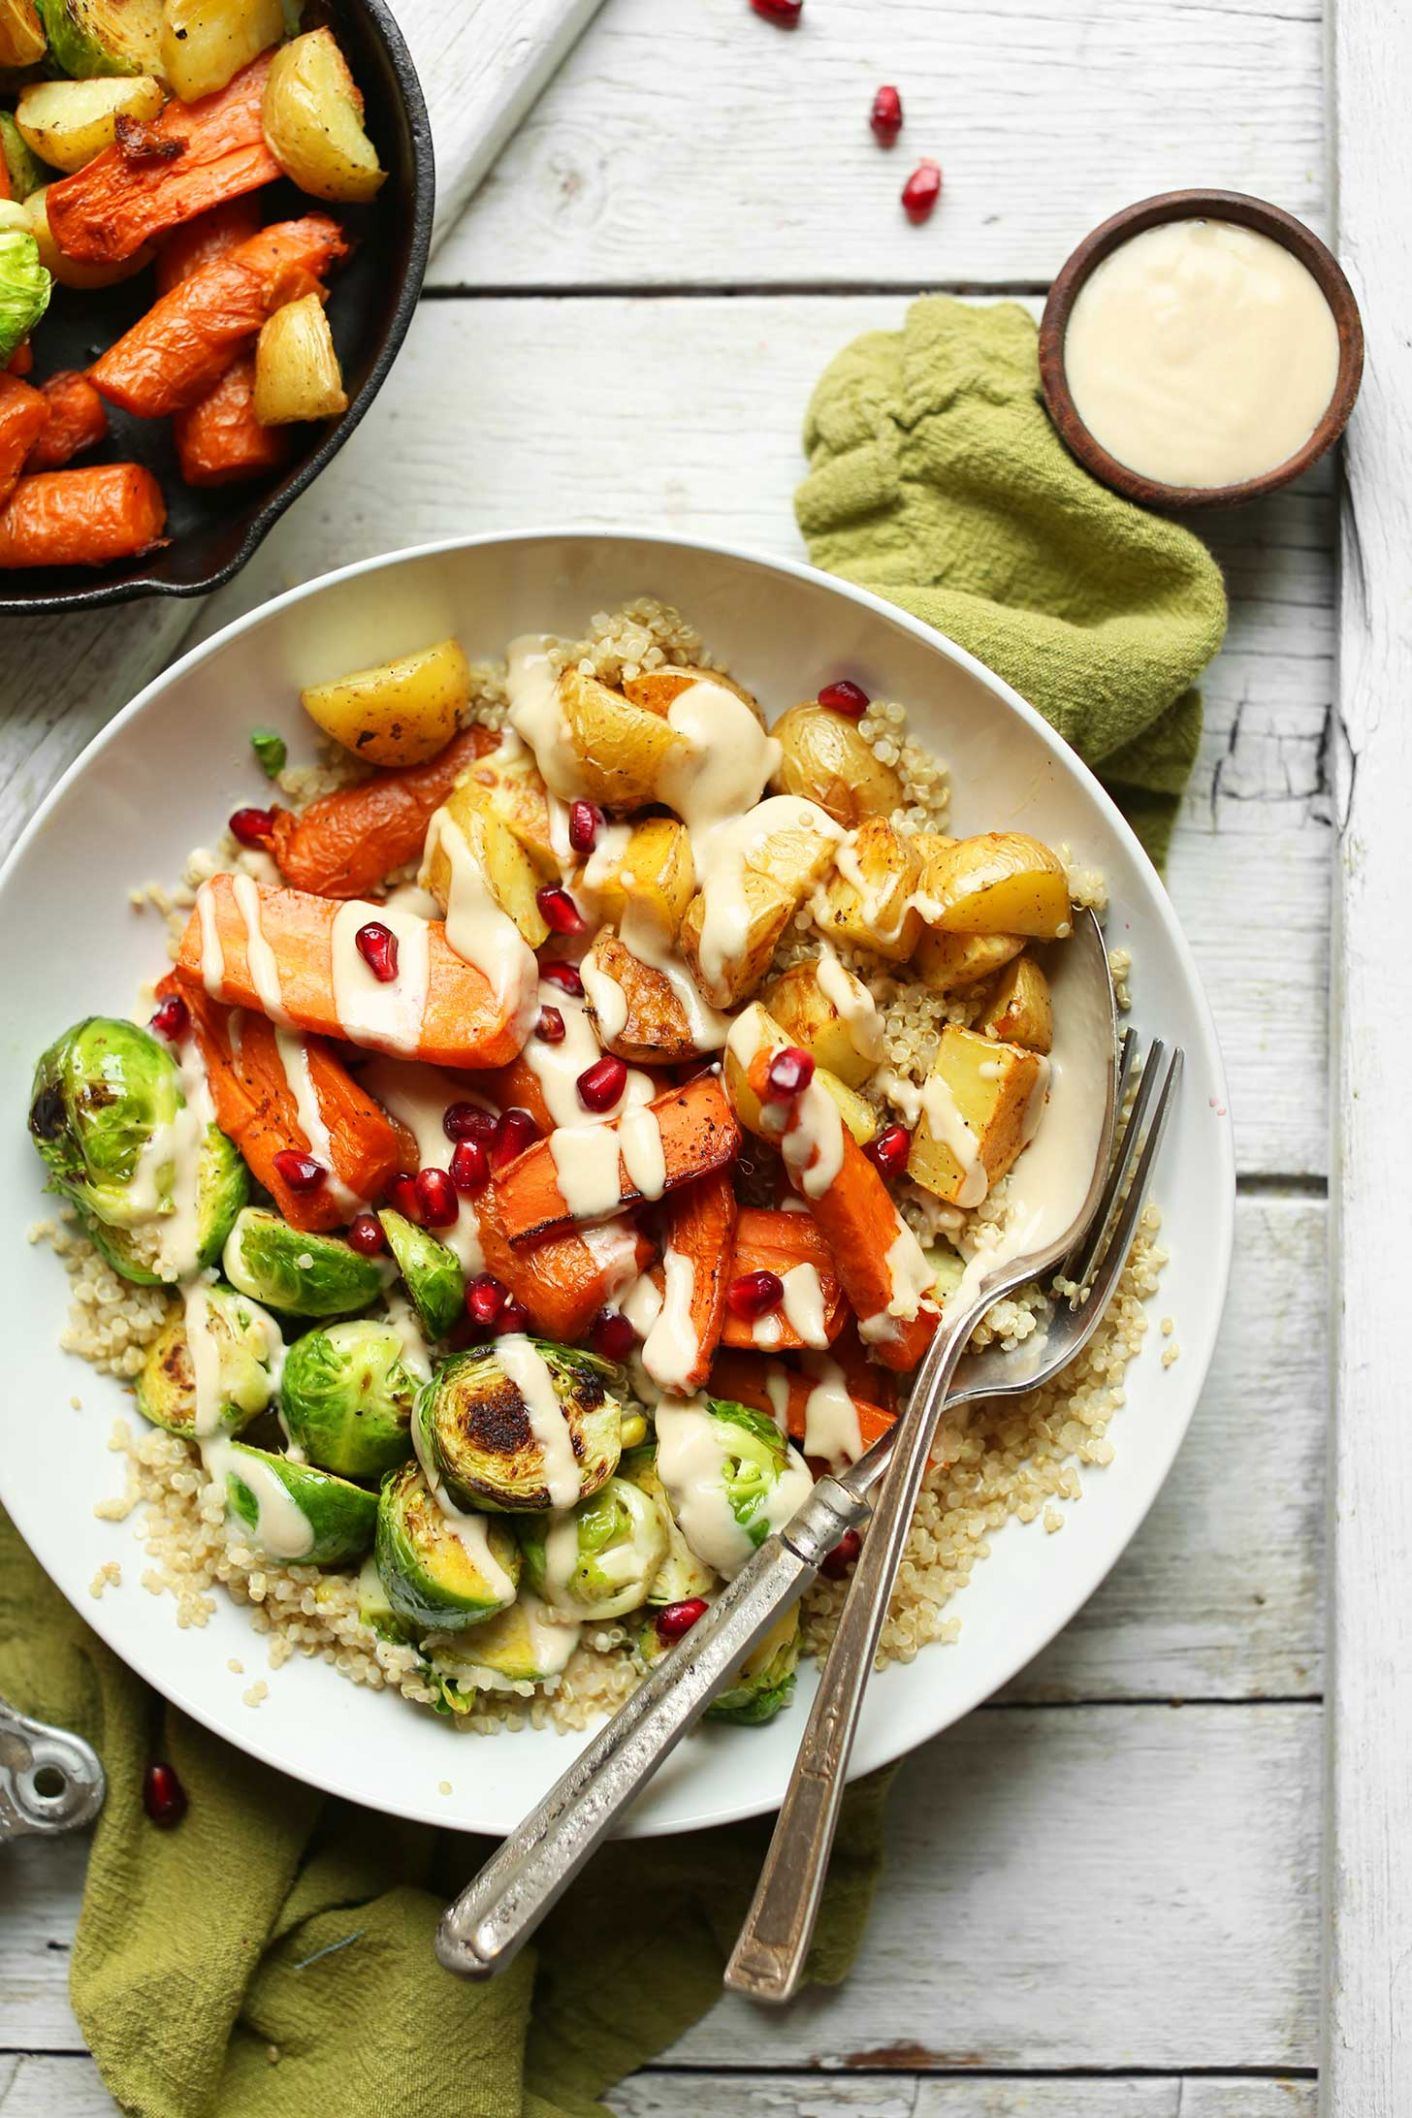 Roasted Vegetable & Quinoa Harvest Bowls - Vegetable Recipes Easy Healthy